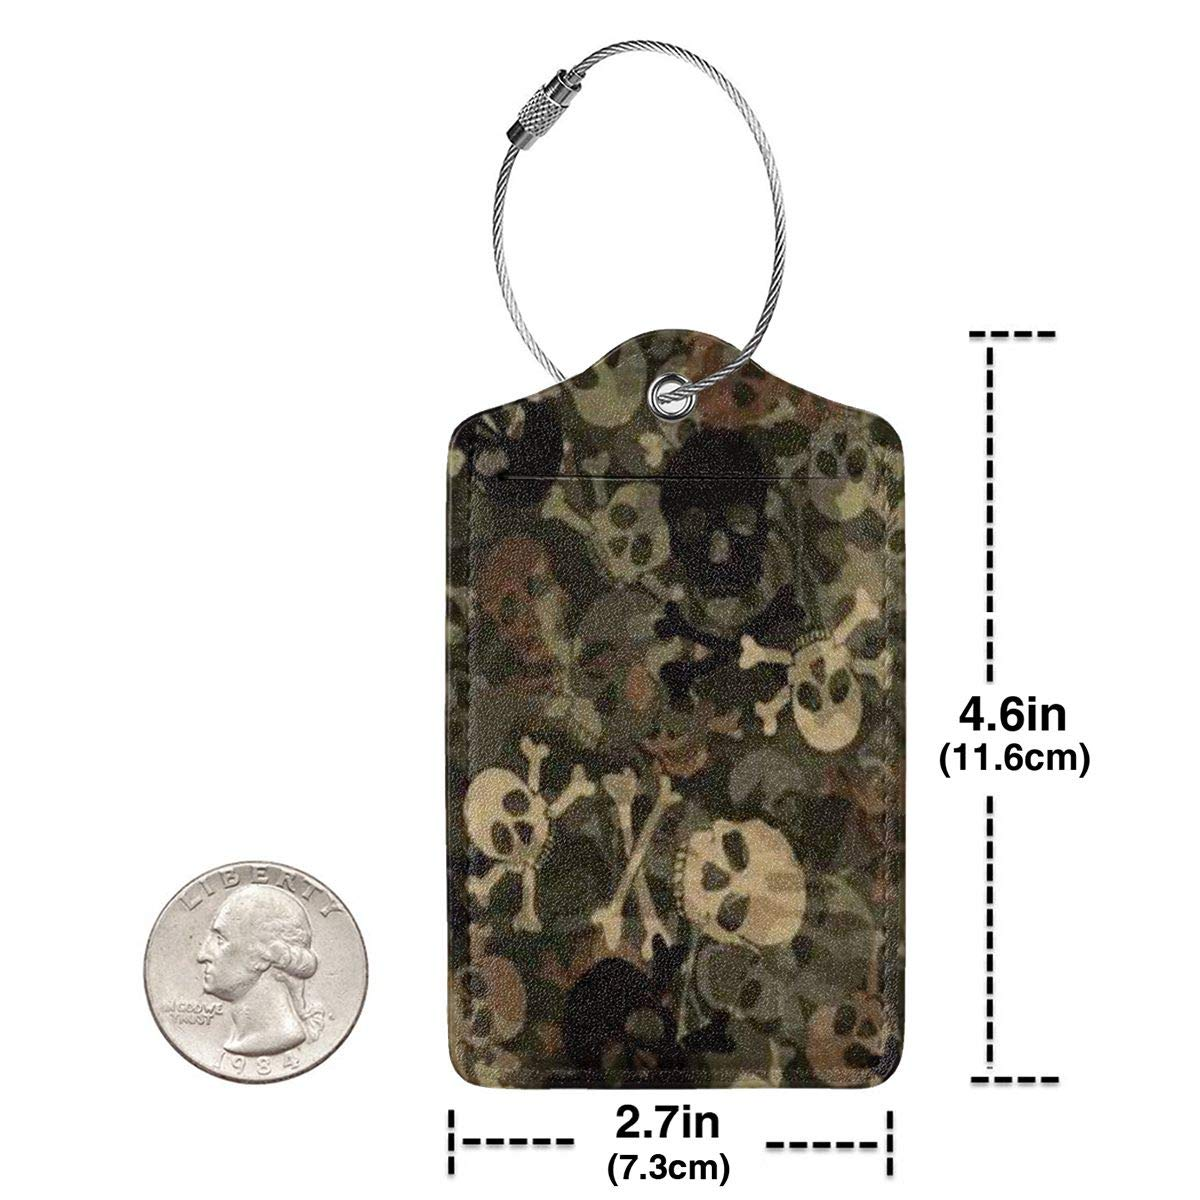 3D Skull Lovers Printing Luggage Tags With Full Back Privacy Cover W//Steel Loops